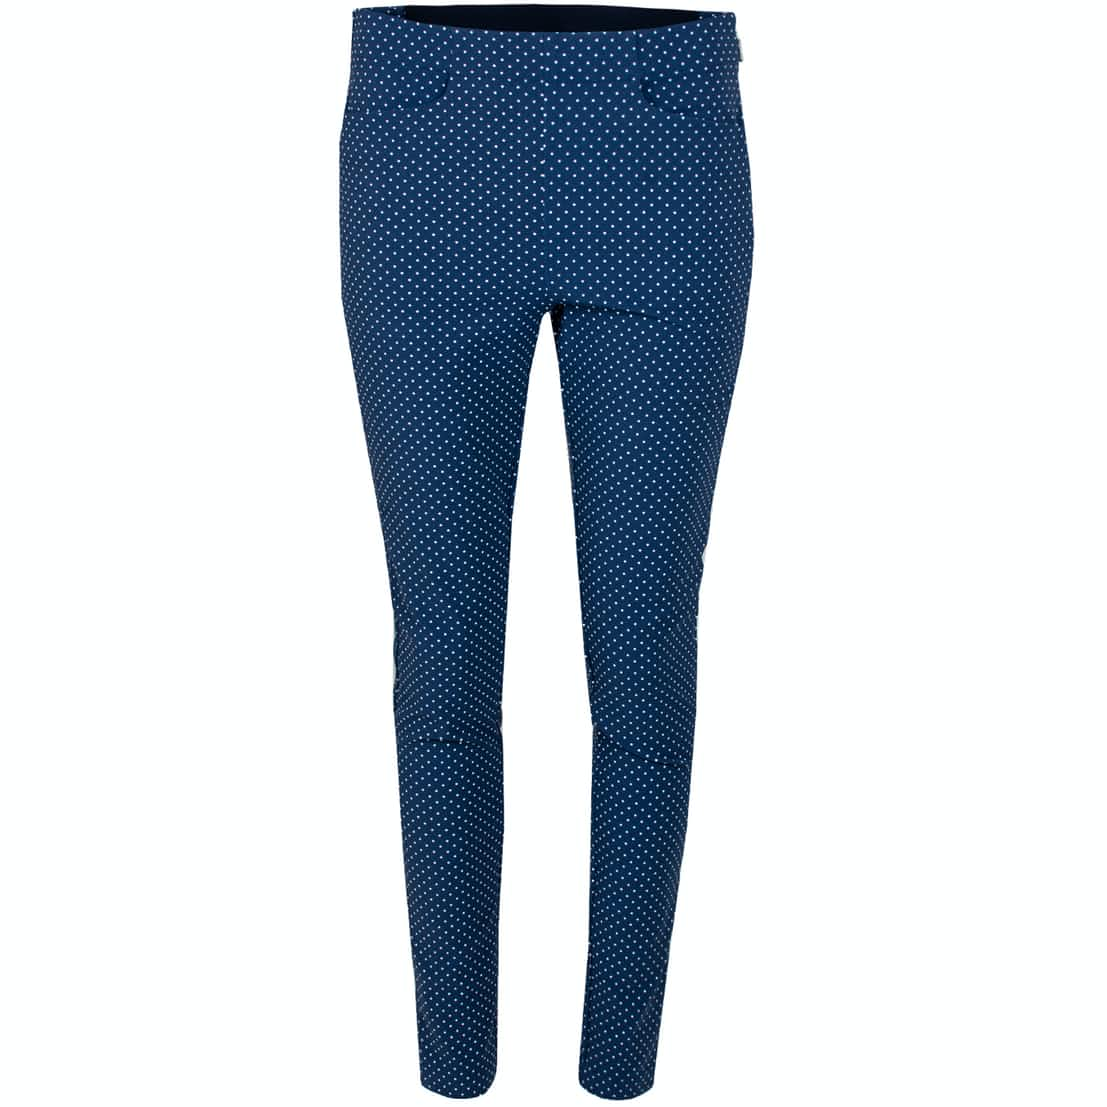 Womens Printed Eagle Pants Navy Dot - AW19